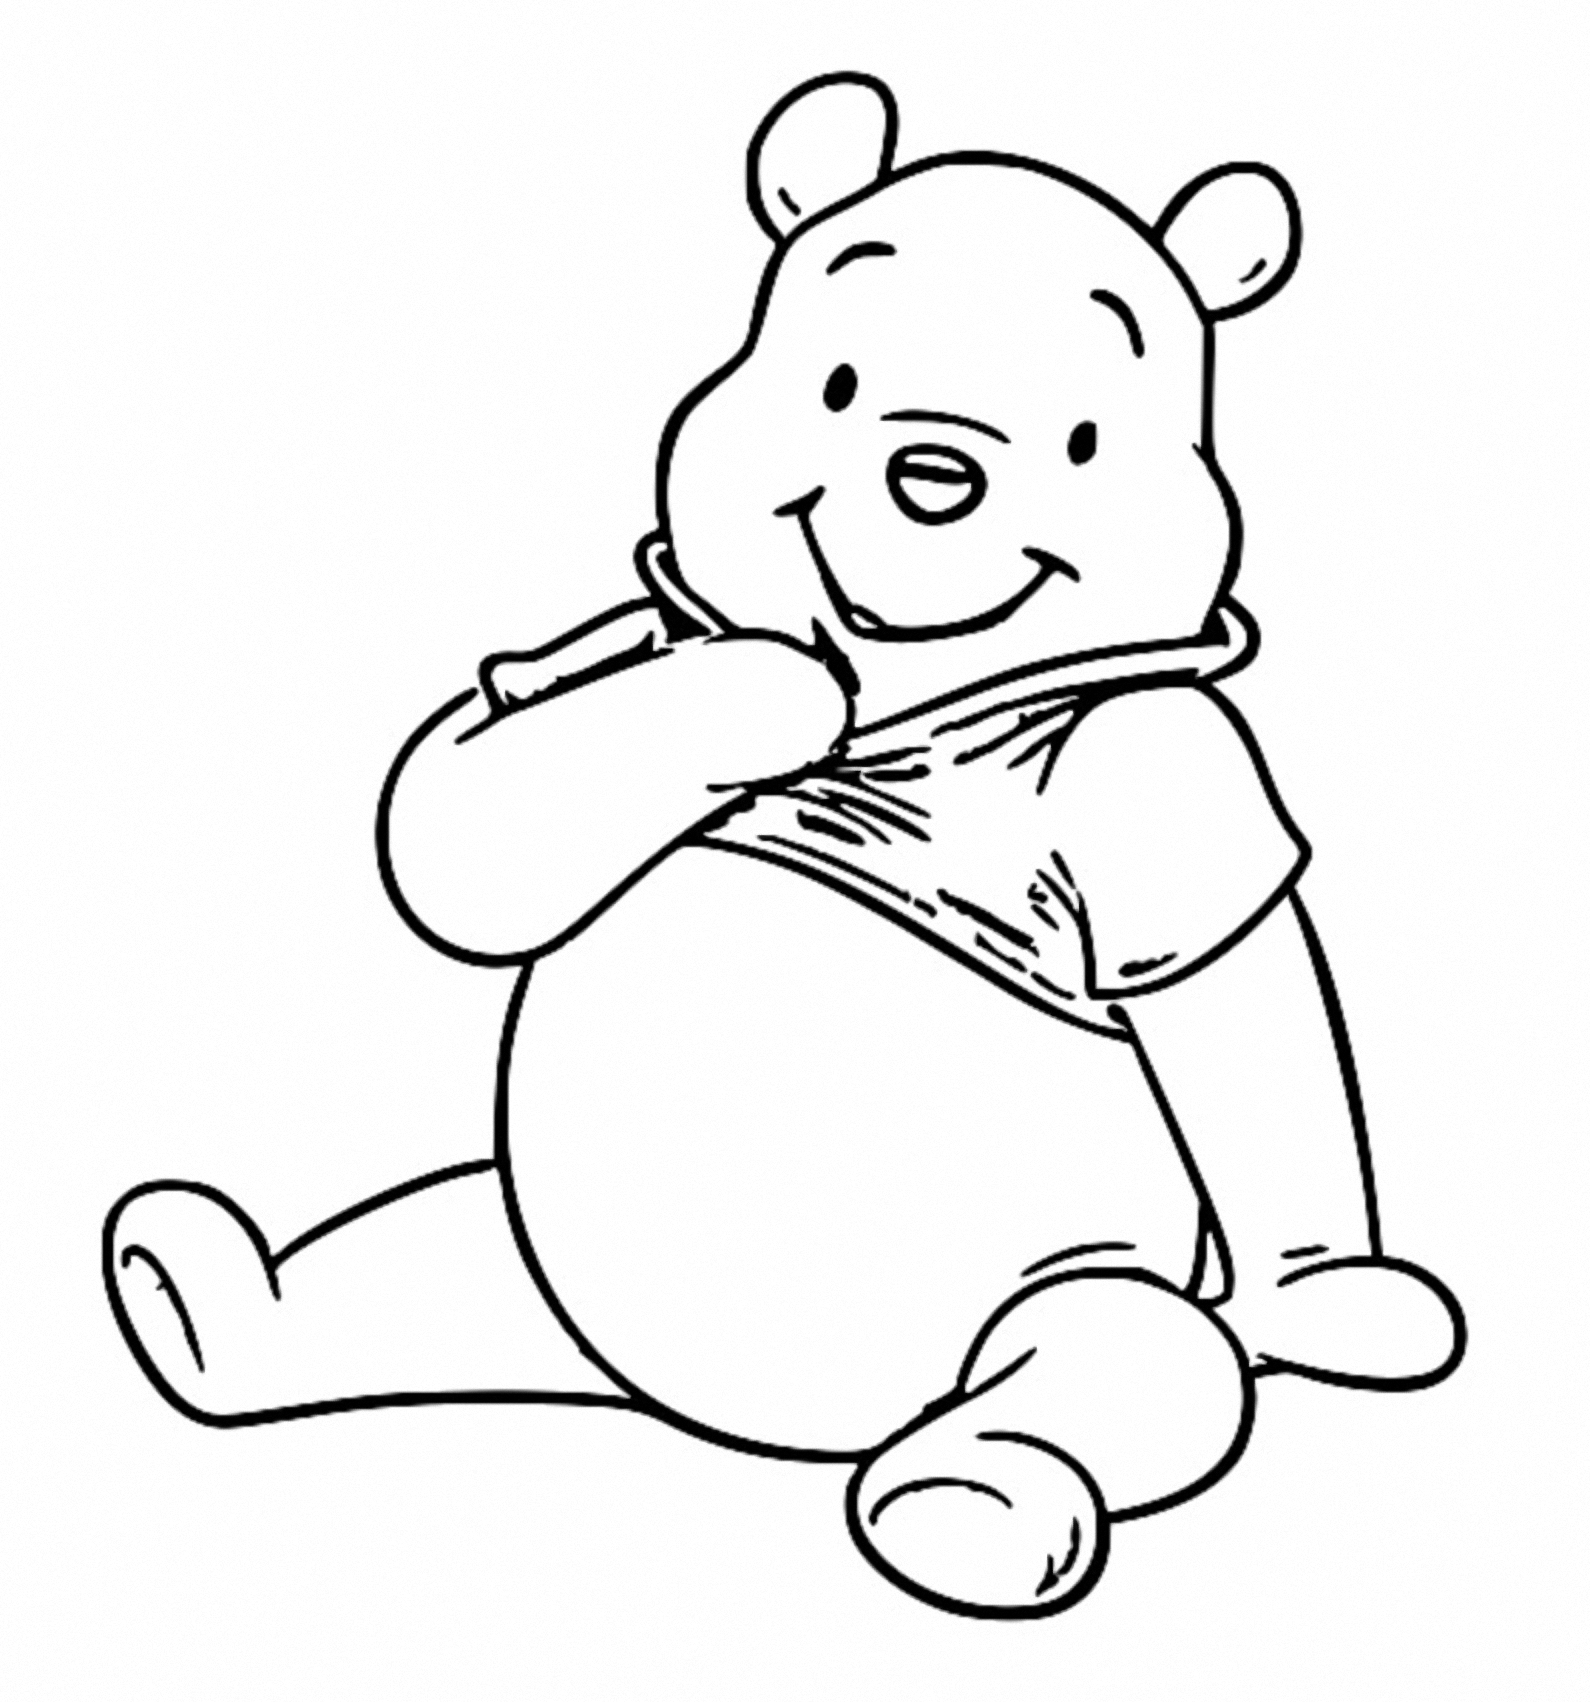 Winnie The Pooh Coloring Page 129